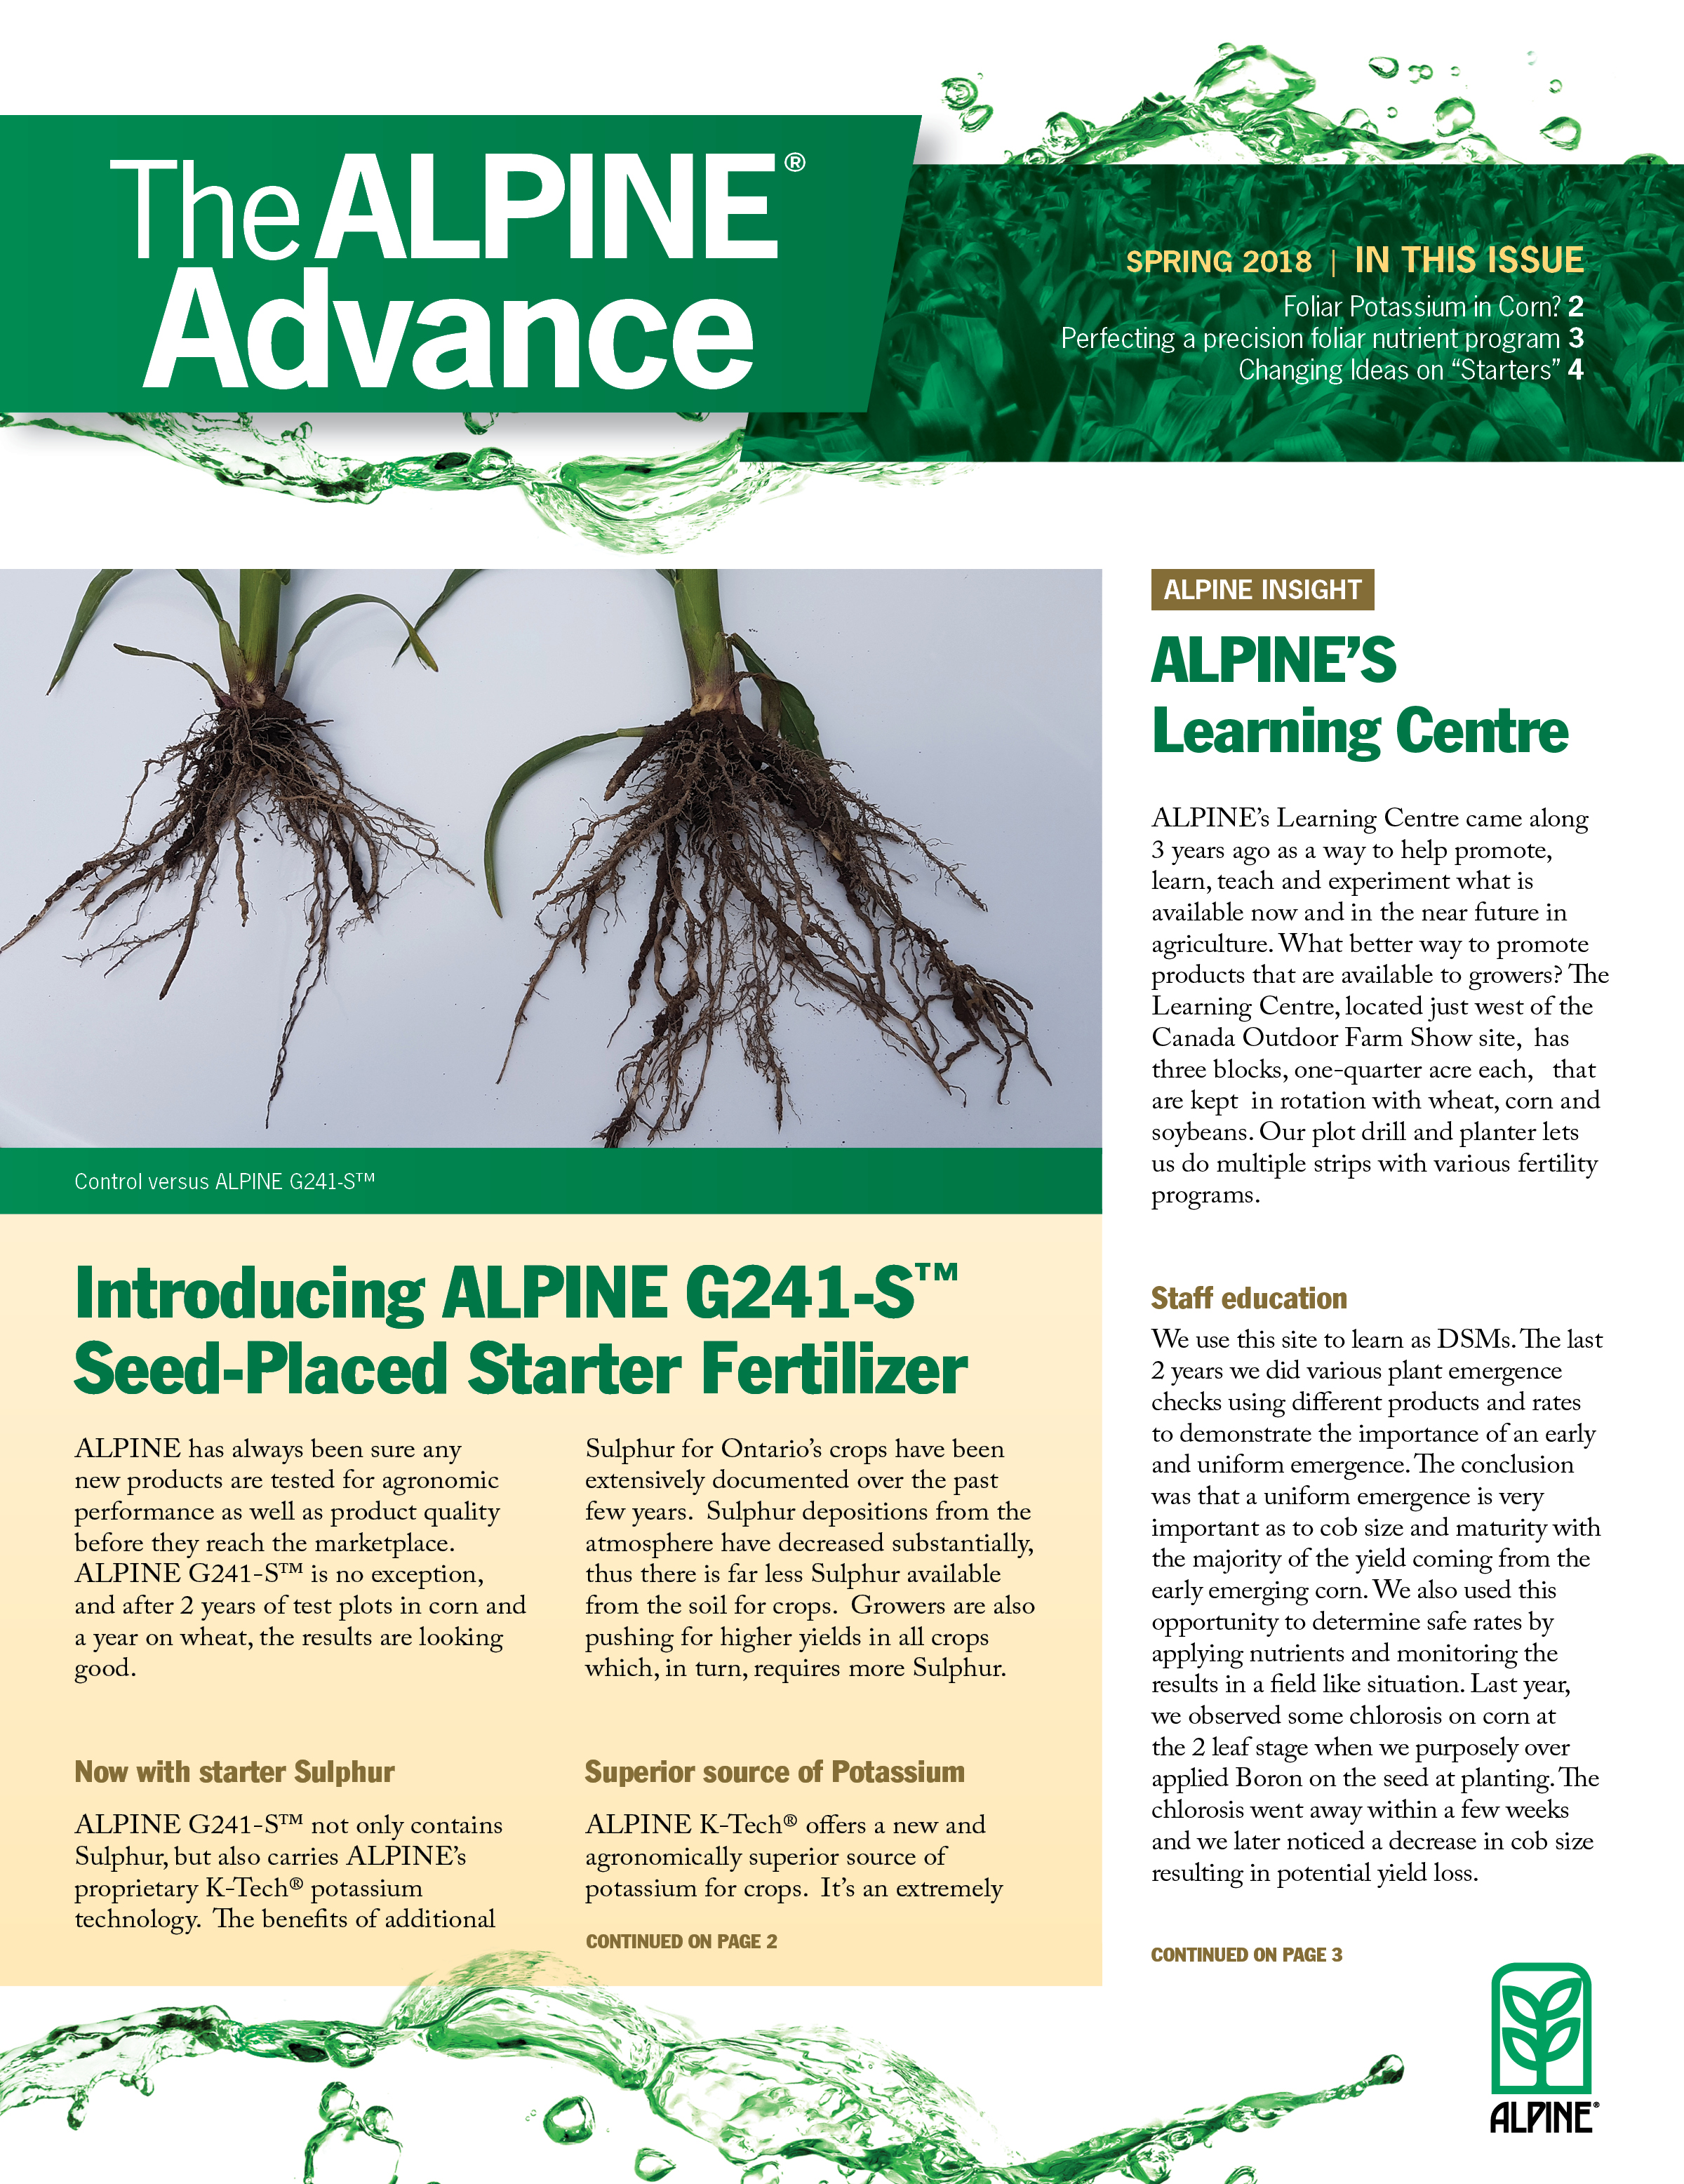 The Alpine Advance Spring 2018